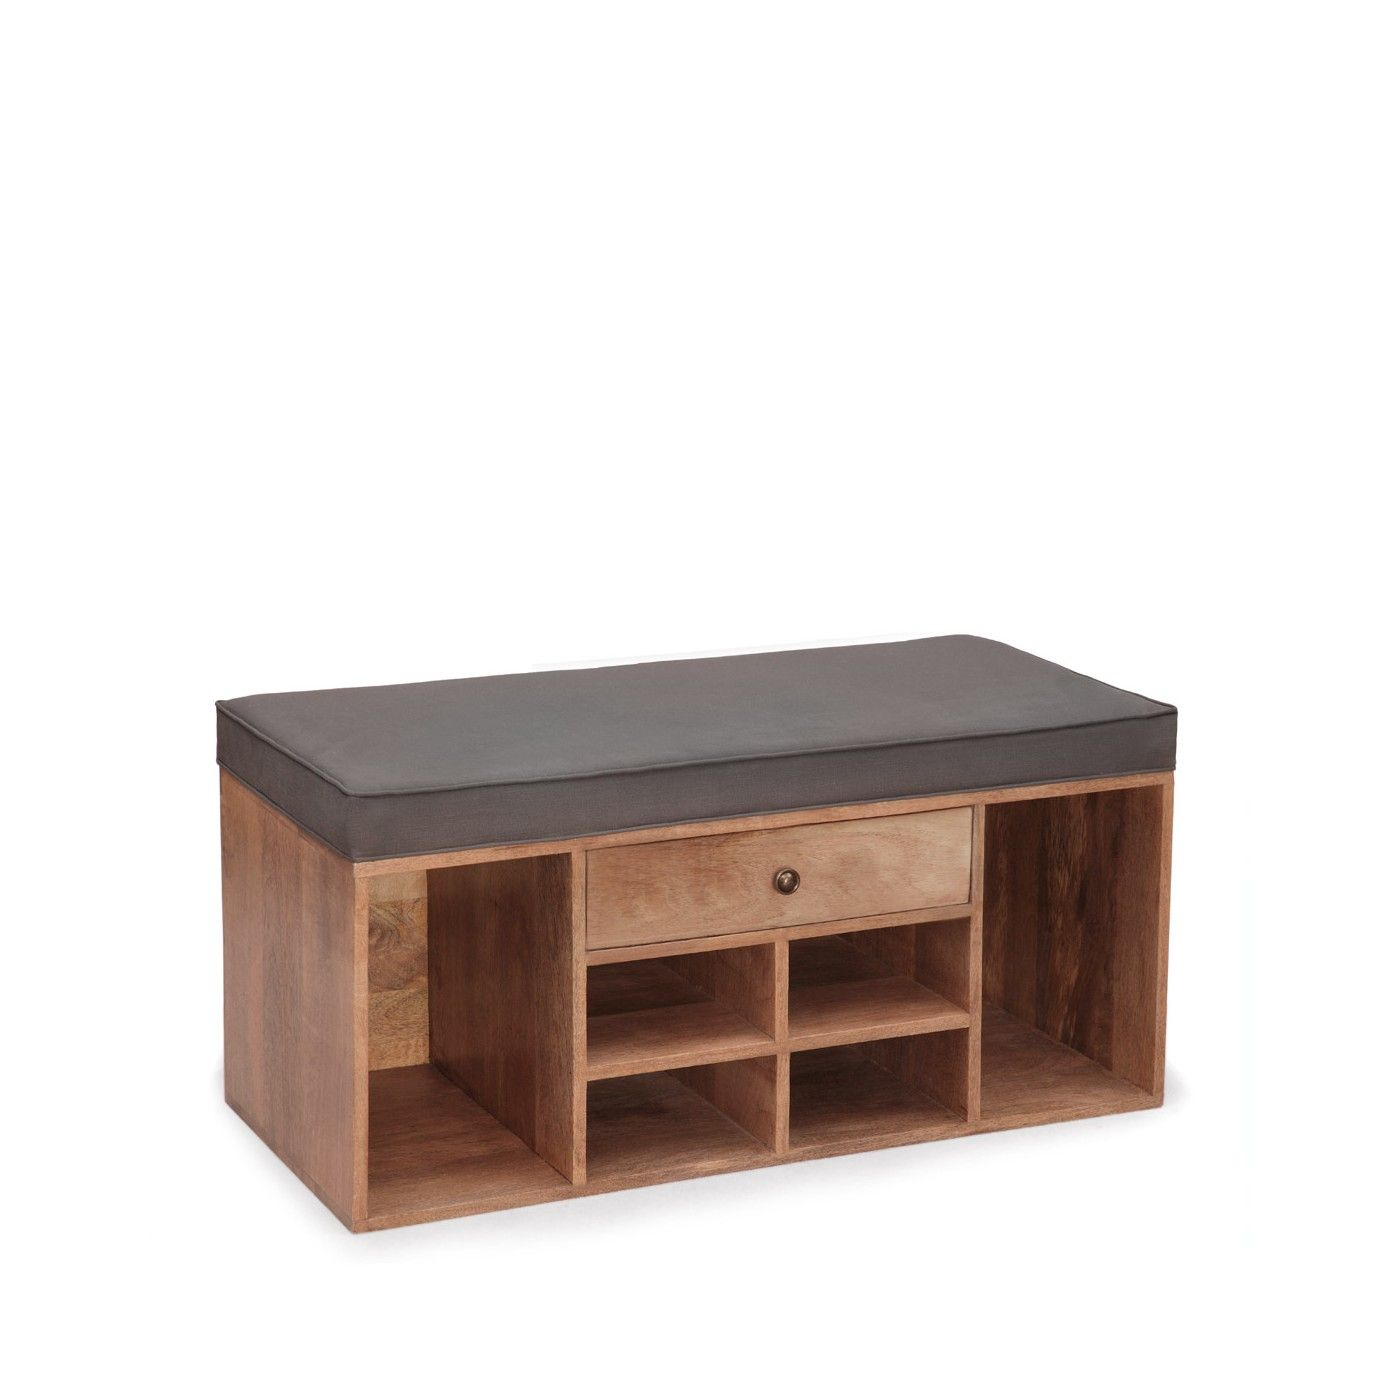 Shoe Storage Bench With Drawer Grey